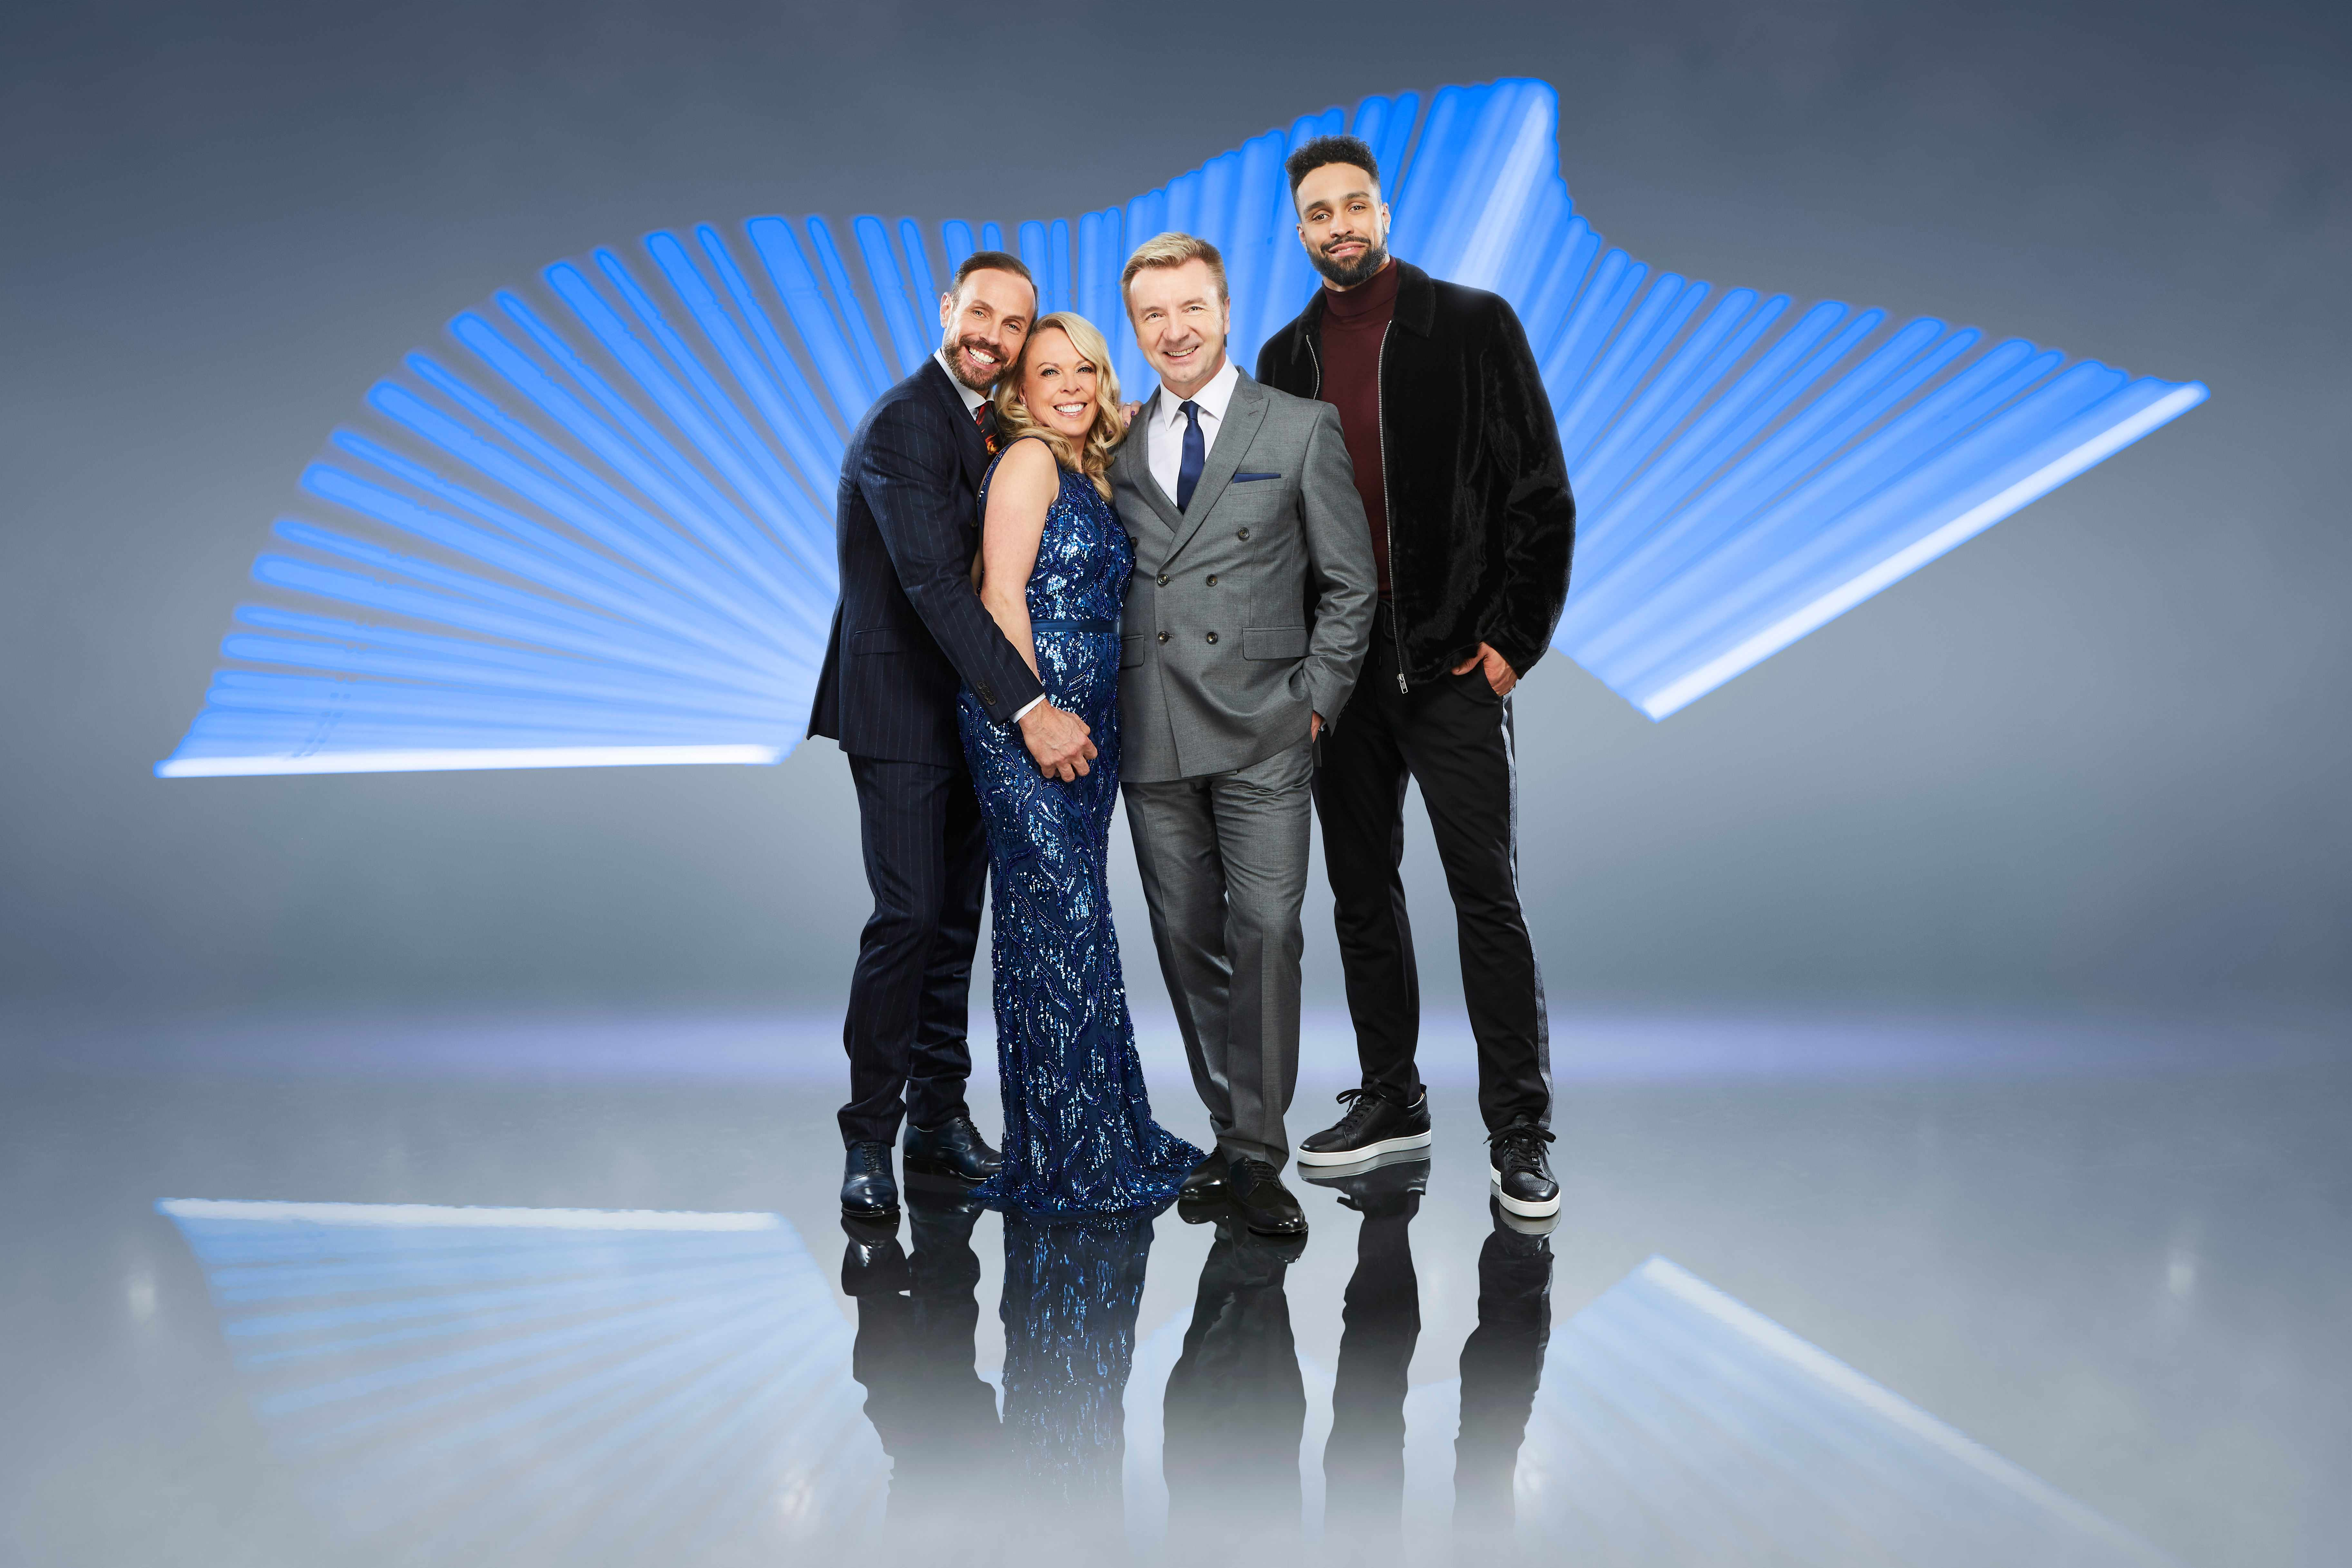 Dancing on Ice judges, ITV